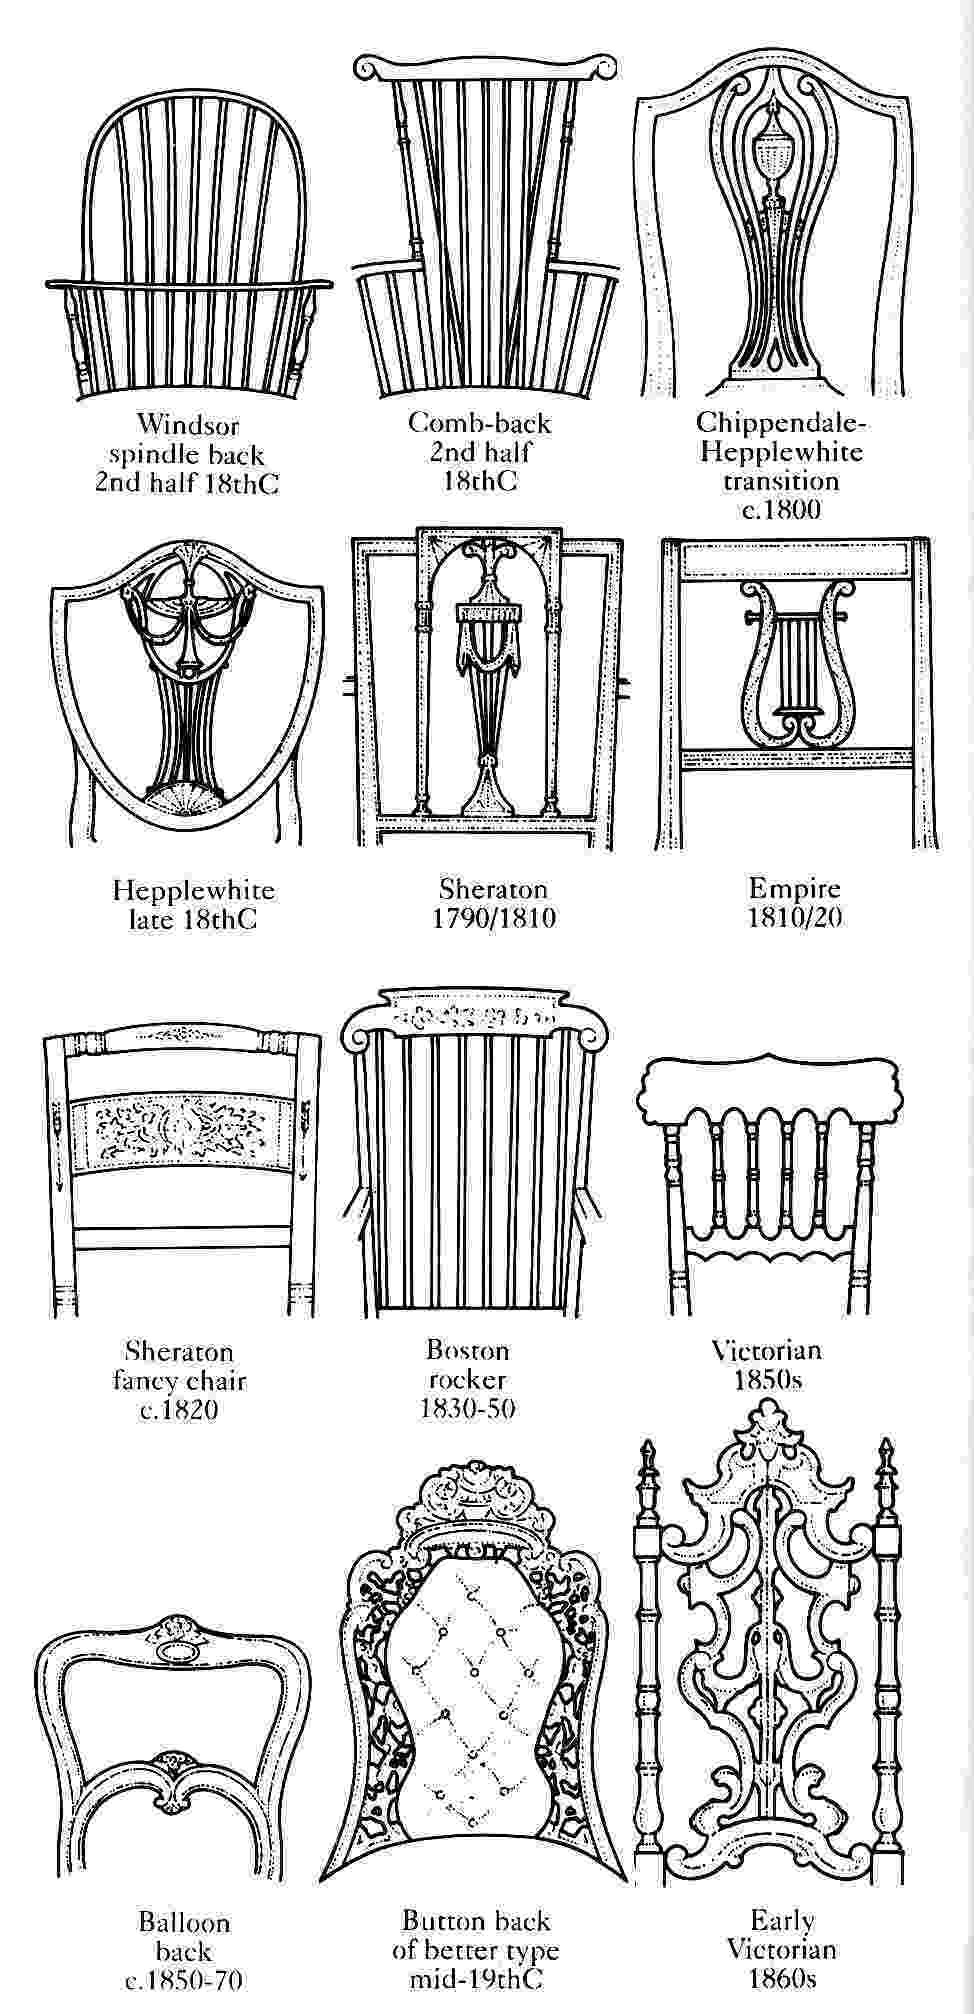 color ideas painting old chairs diagram of american chair backs 2nd half of 18th century chairs painting old ideas color